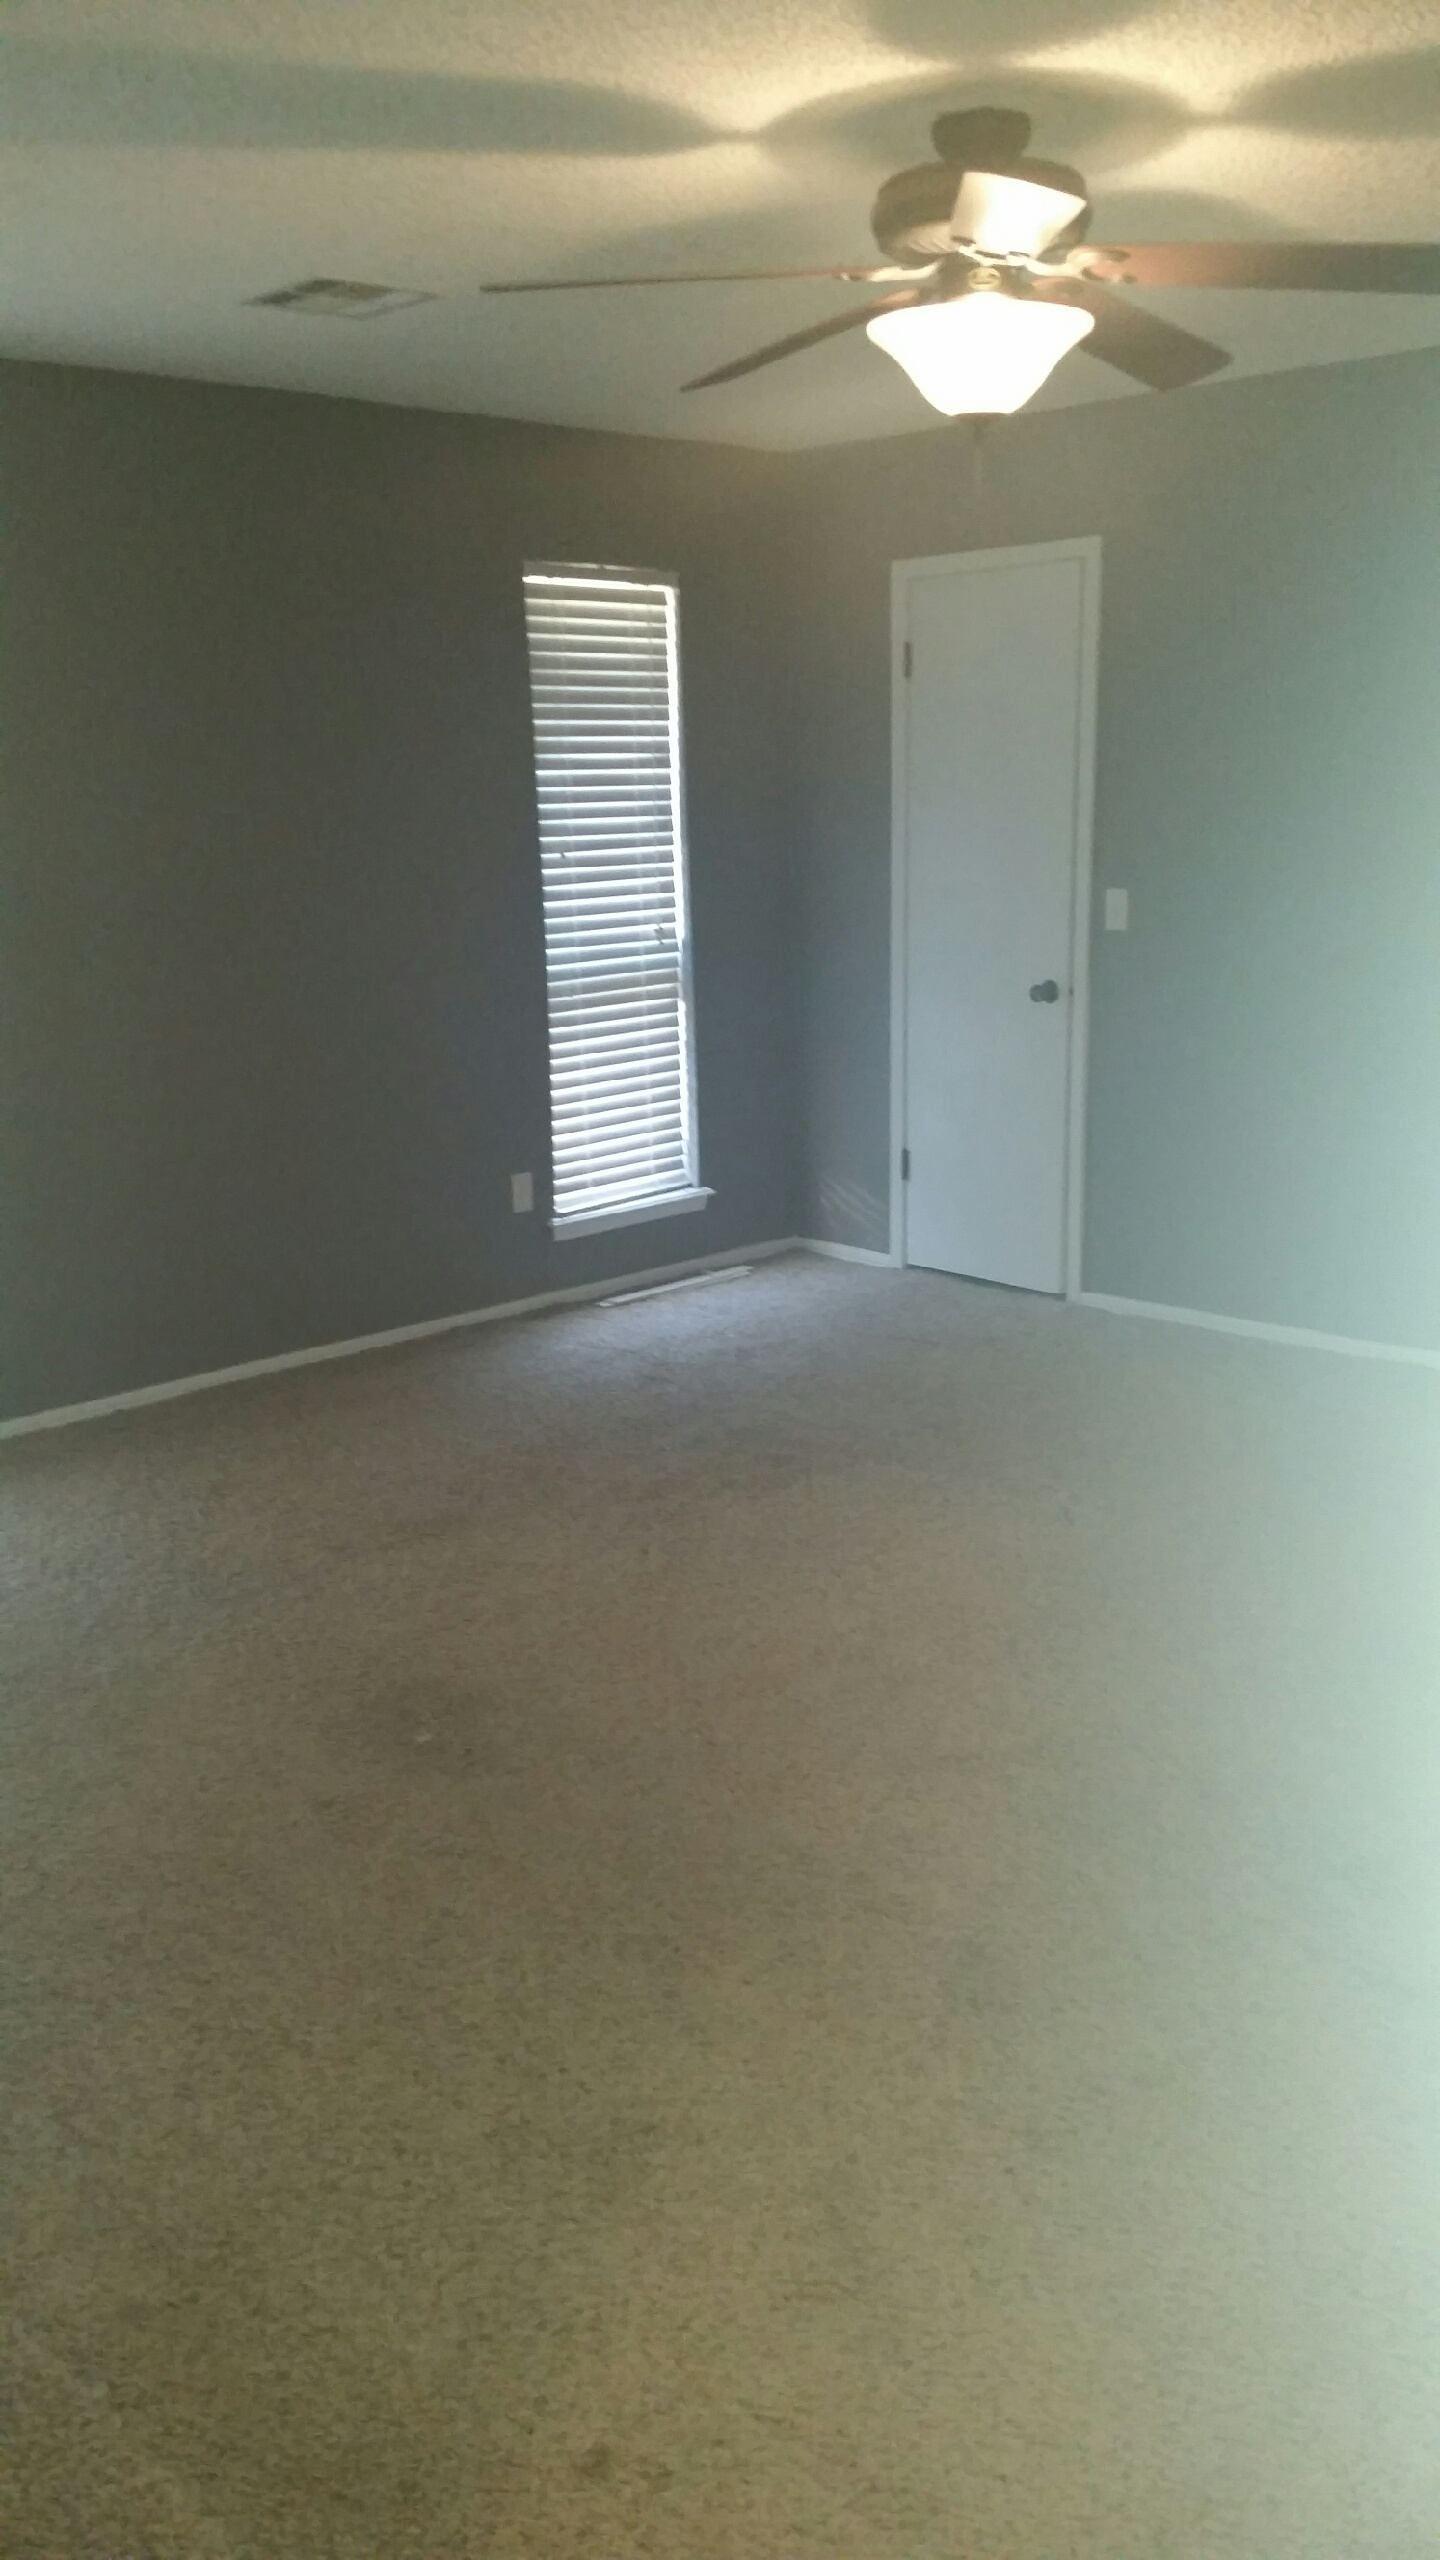 Craigslist Okc Beautiful Mobile Homes For Sale In Okc This Is e